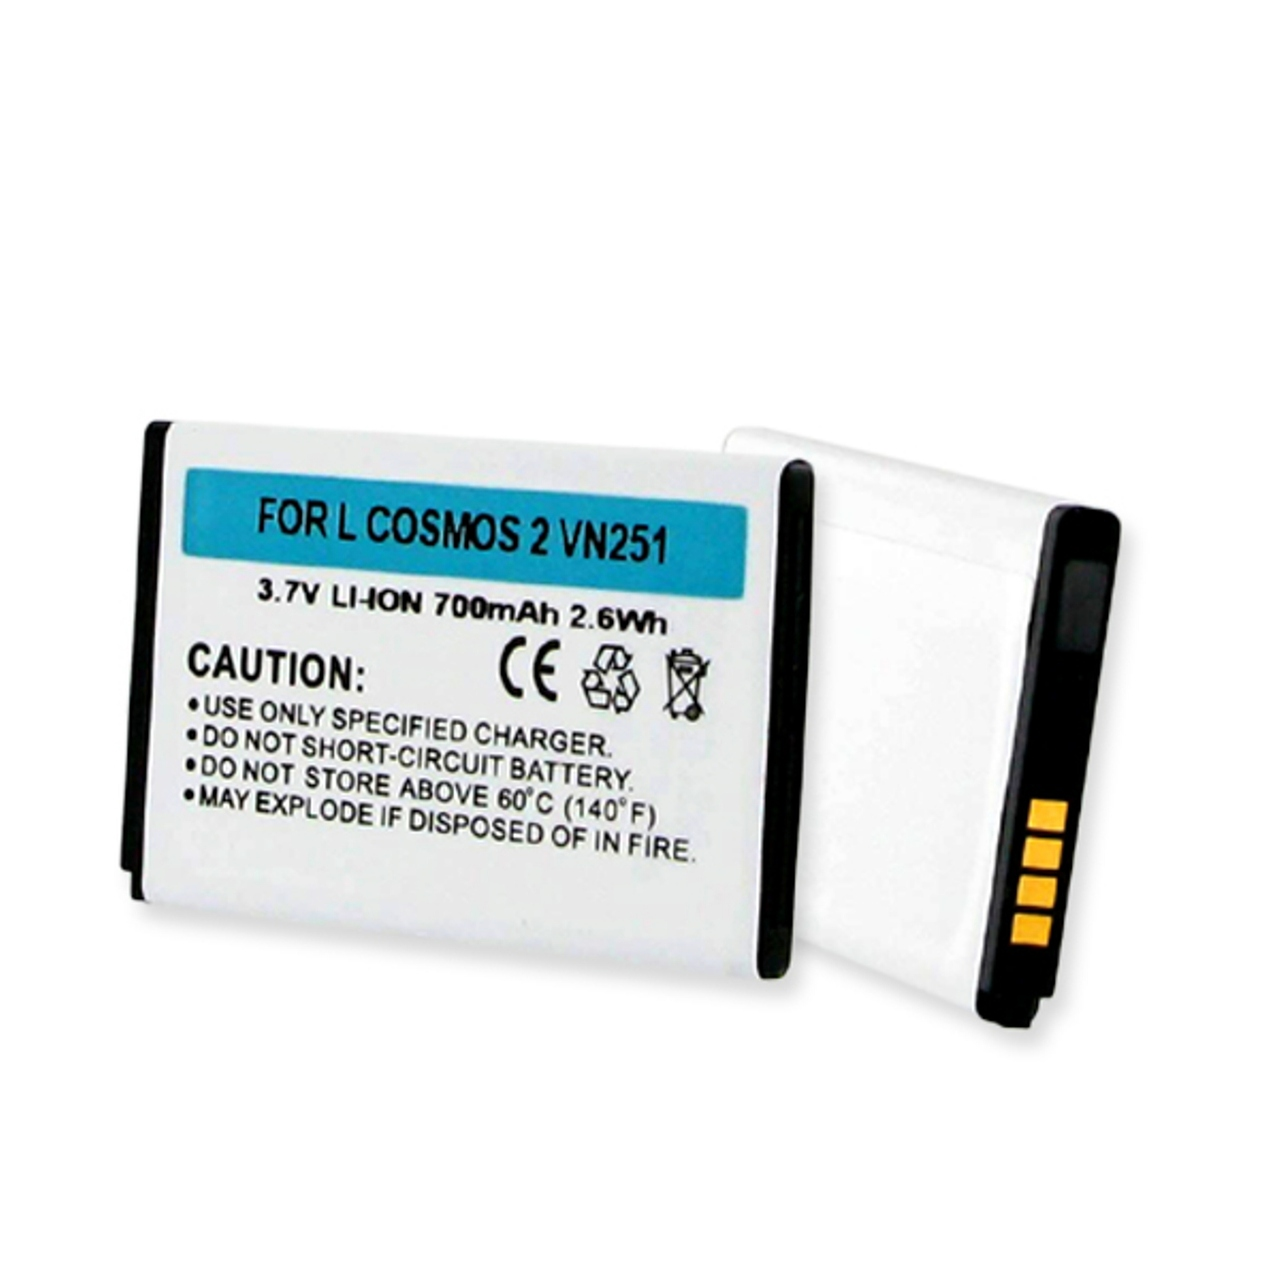 LG COSMOS 2 VN251 LI-ION 700mAh CELLULAR BATTERY + FREE SHIPPING